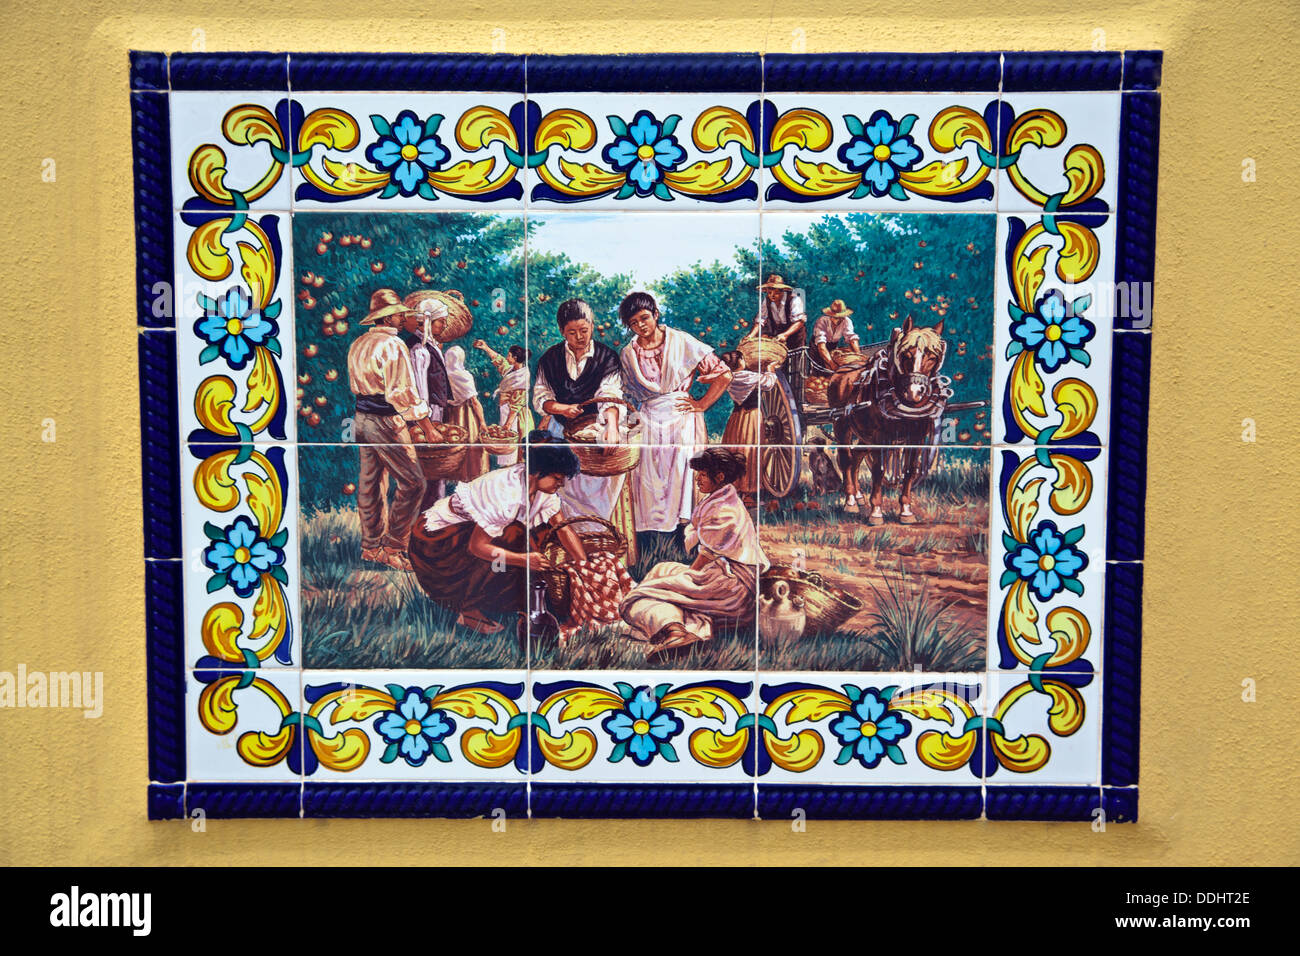 Spanish Wall Tile Mural, Harvesting the Oranges - Stock Image